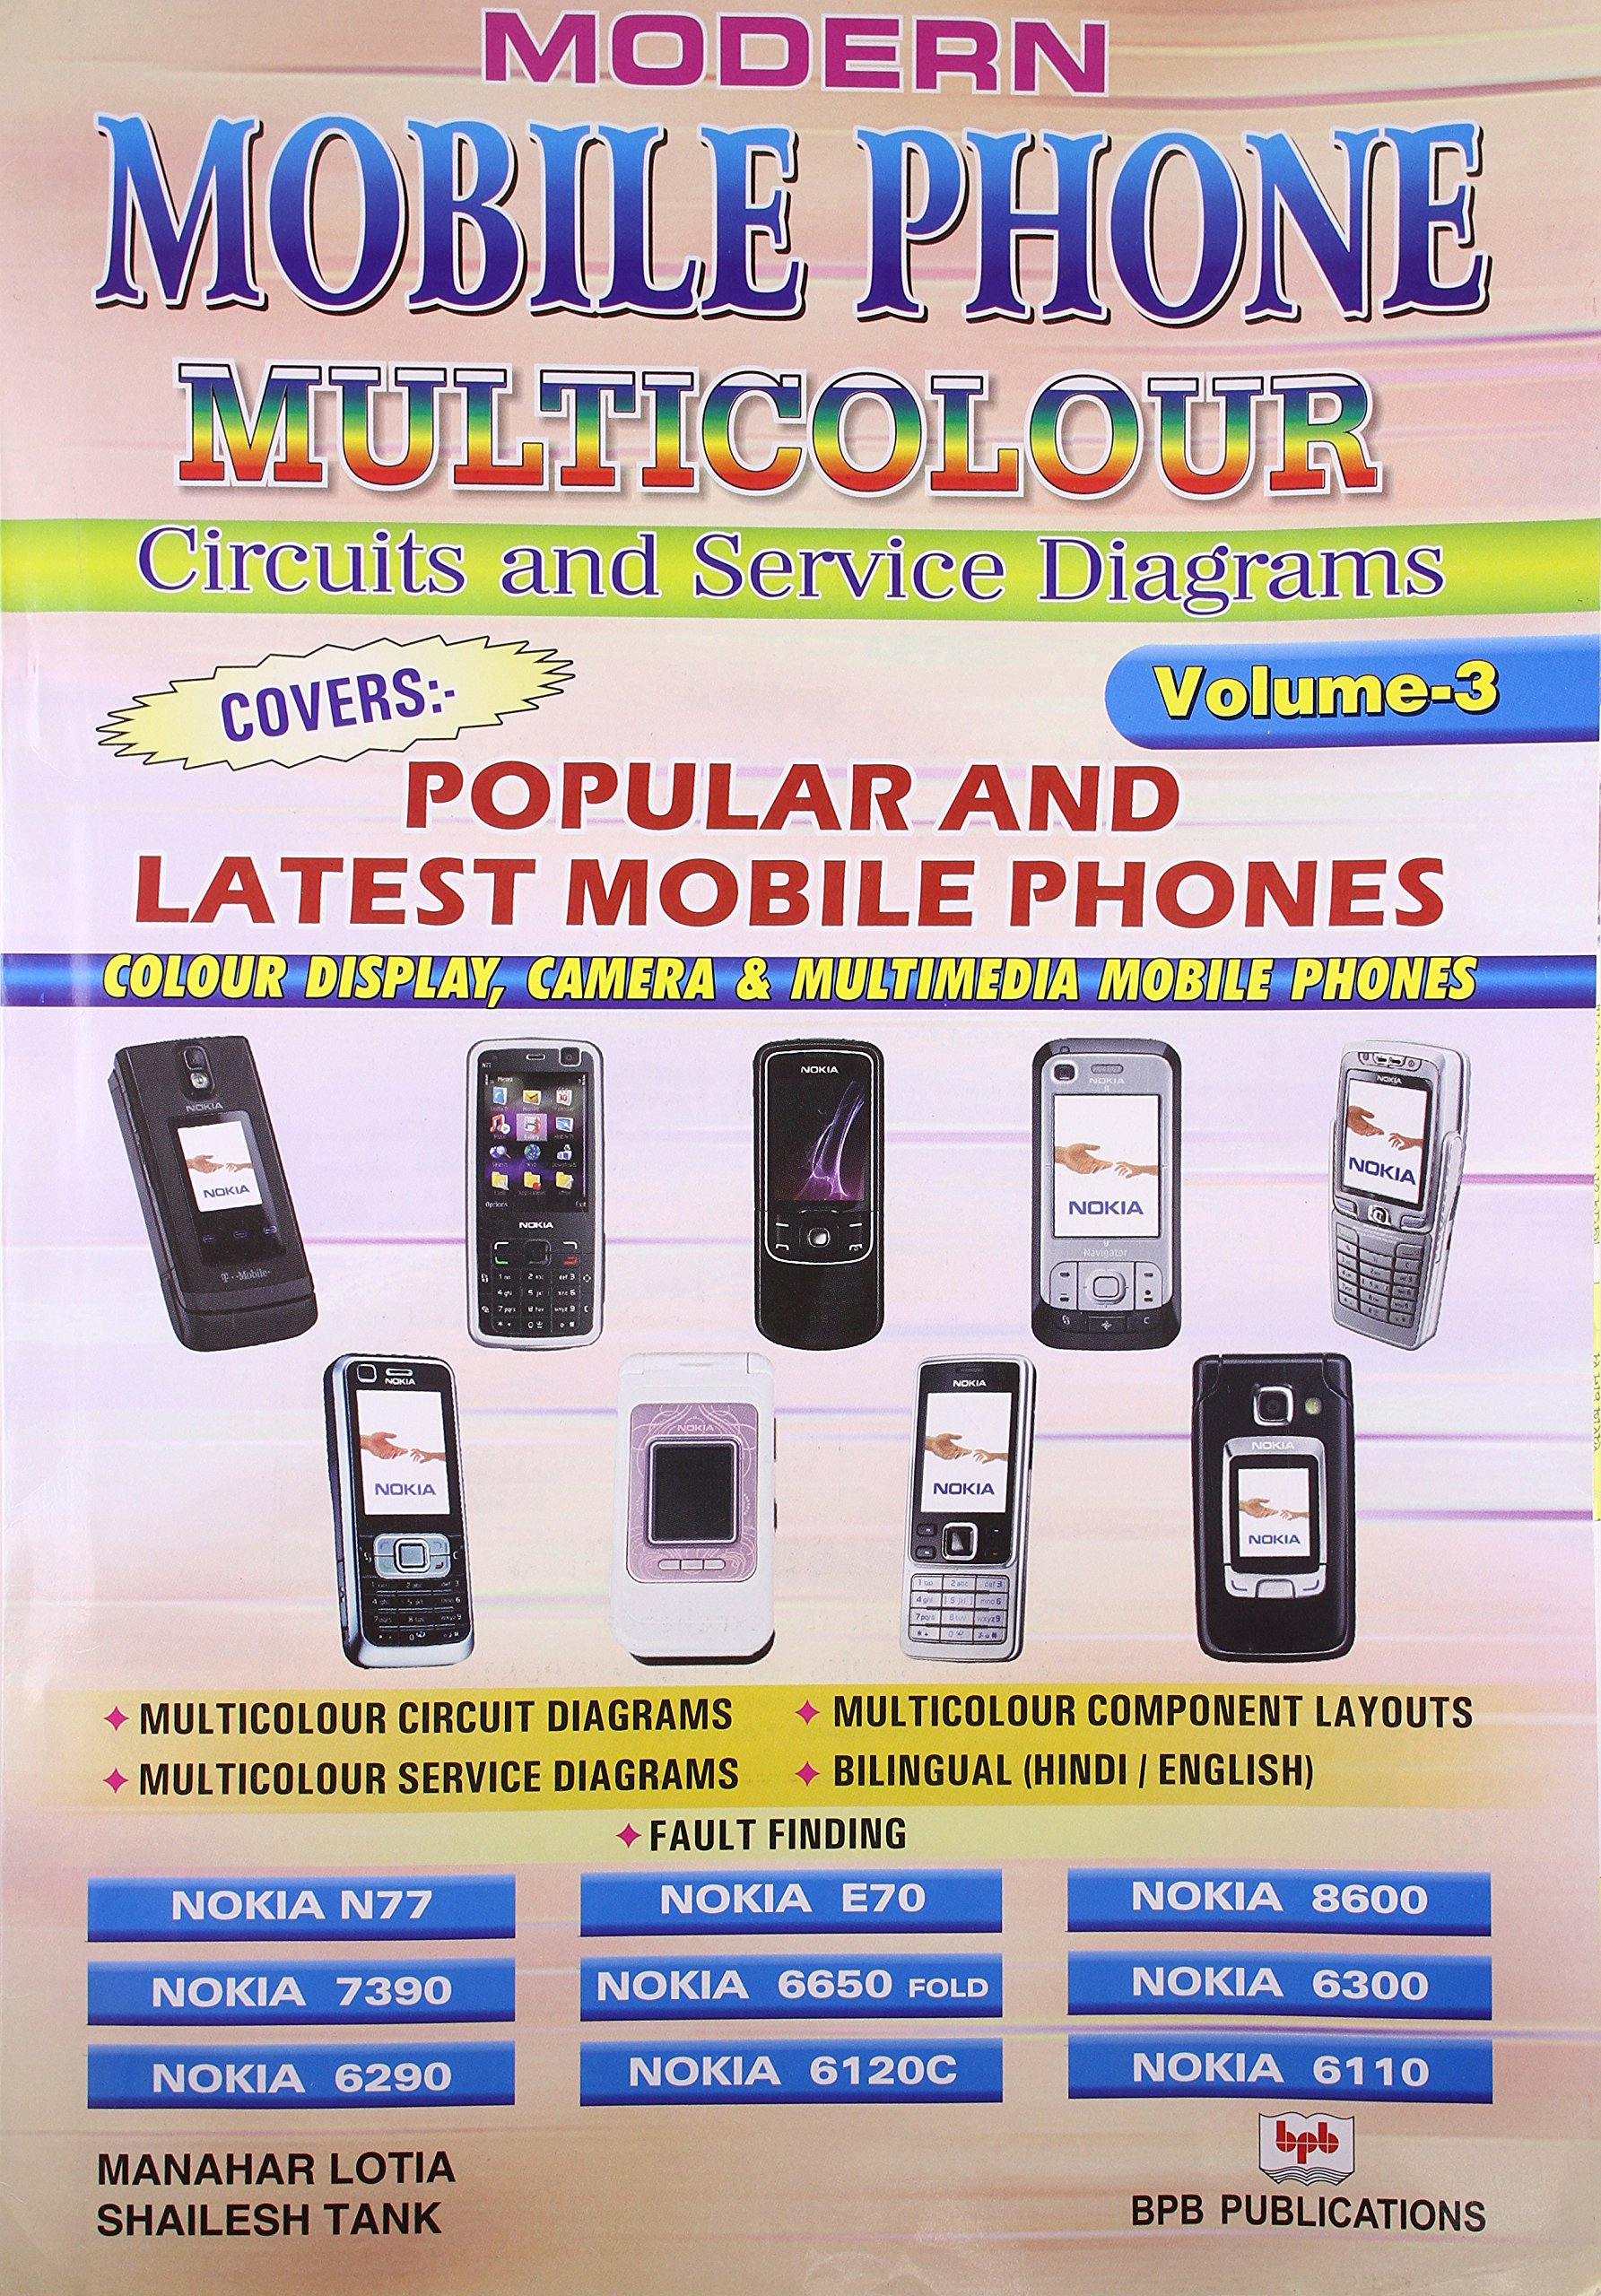 buy modern nokia mobile phone multicolor ckts servicing diagram repairing v 3 book online at low prices in india modern nokia mobile phone multicolor